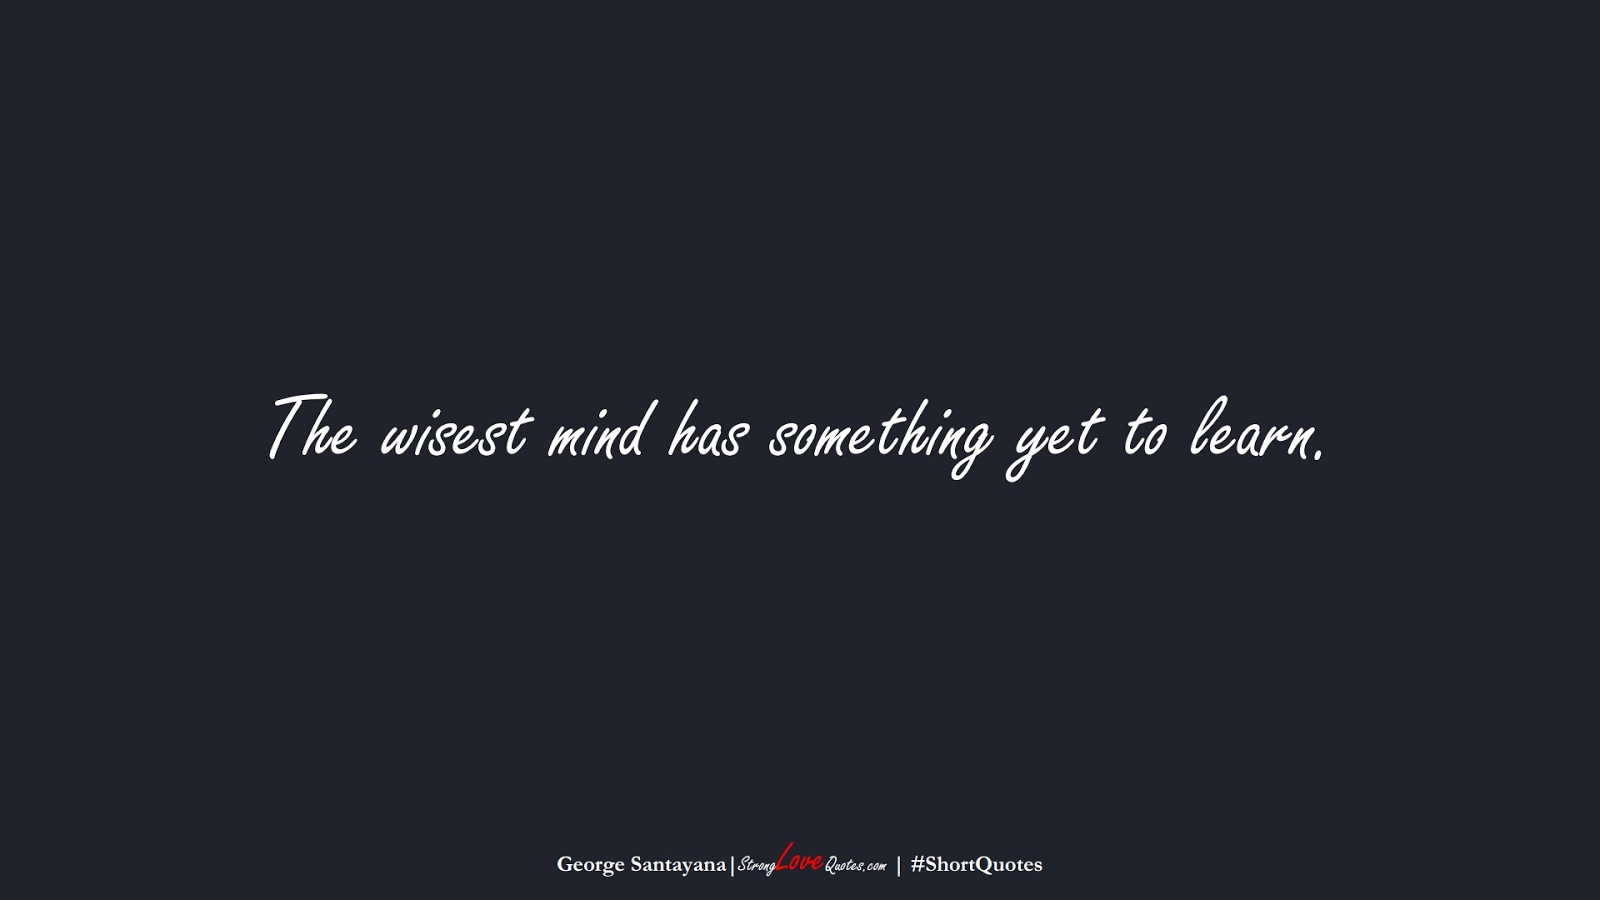 The wisest mind has something yet to learn. (George Santayana);  #ShortQuotes